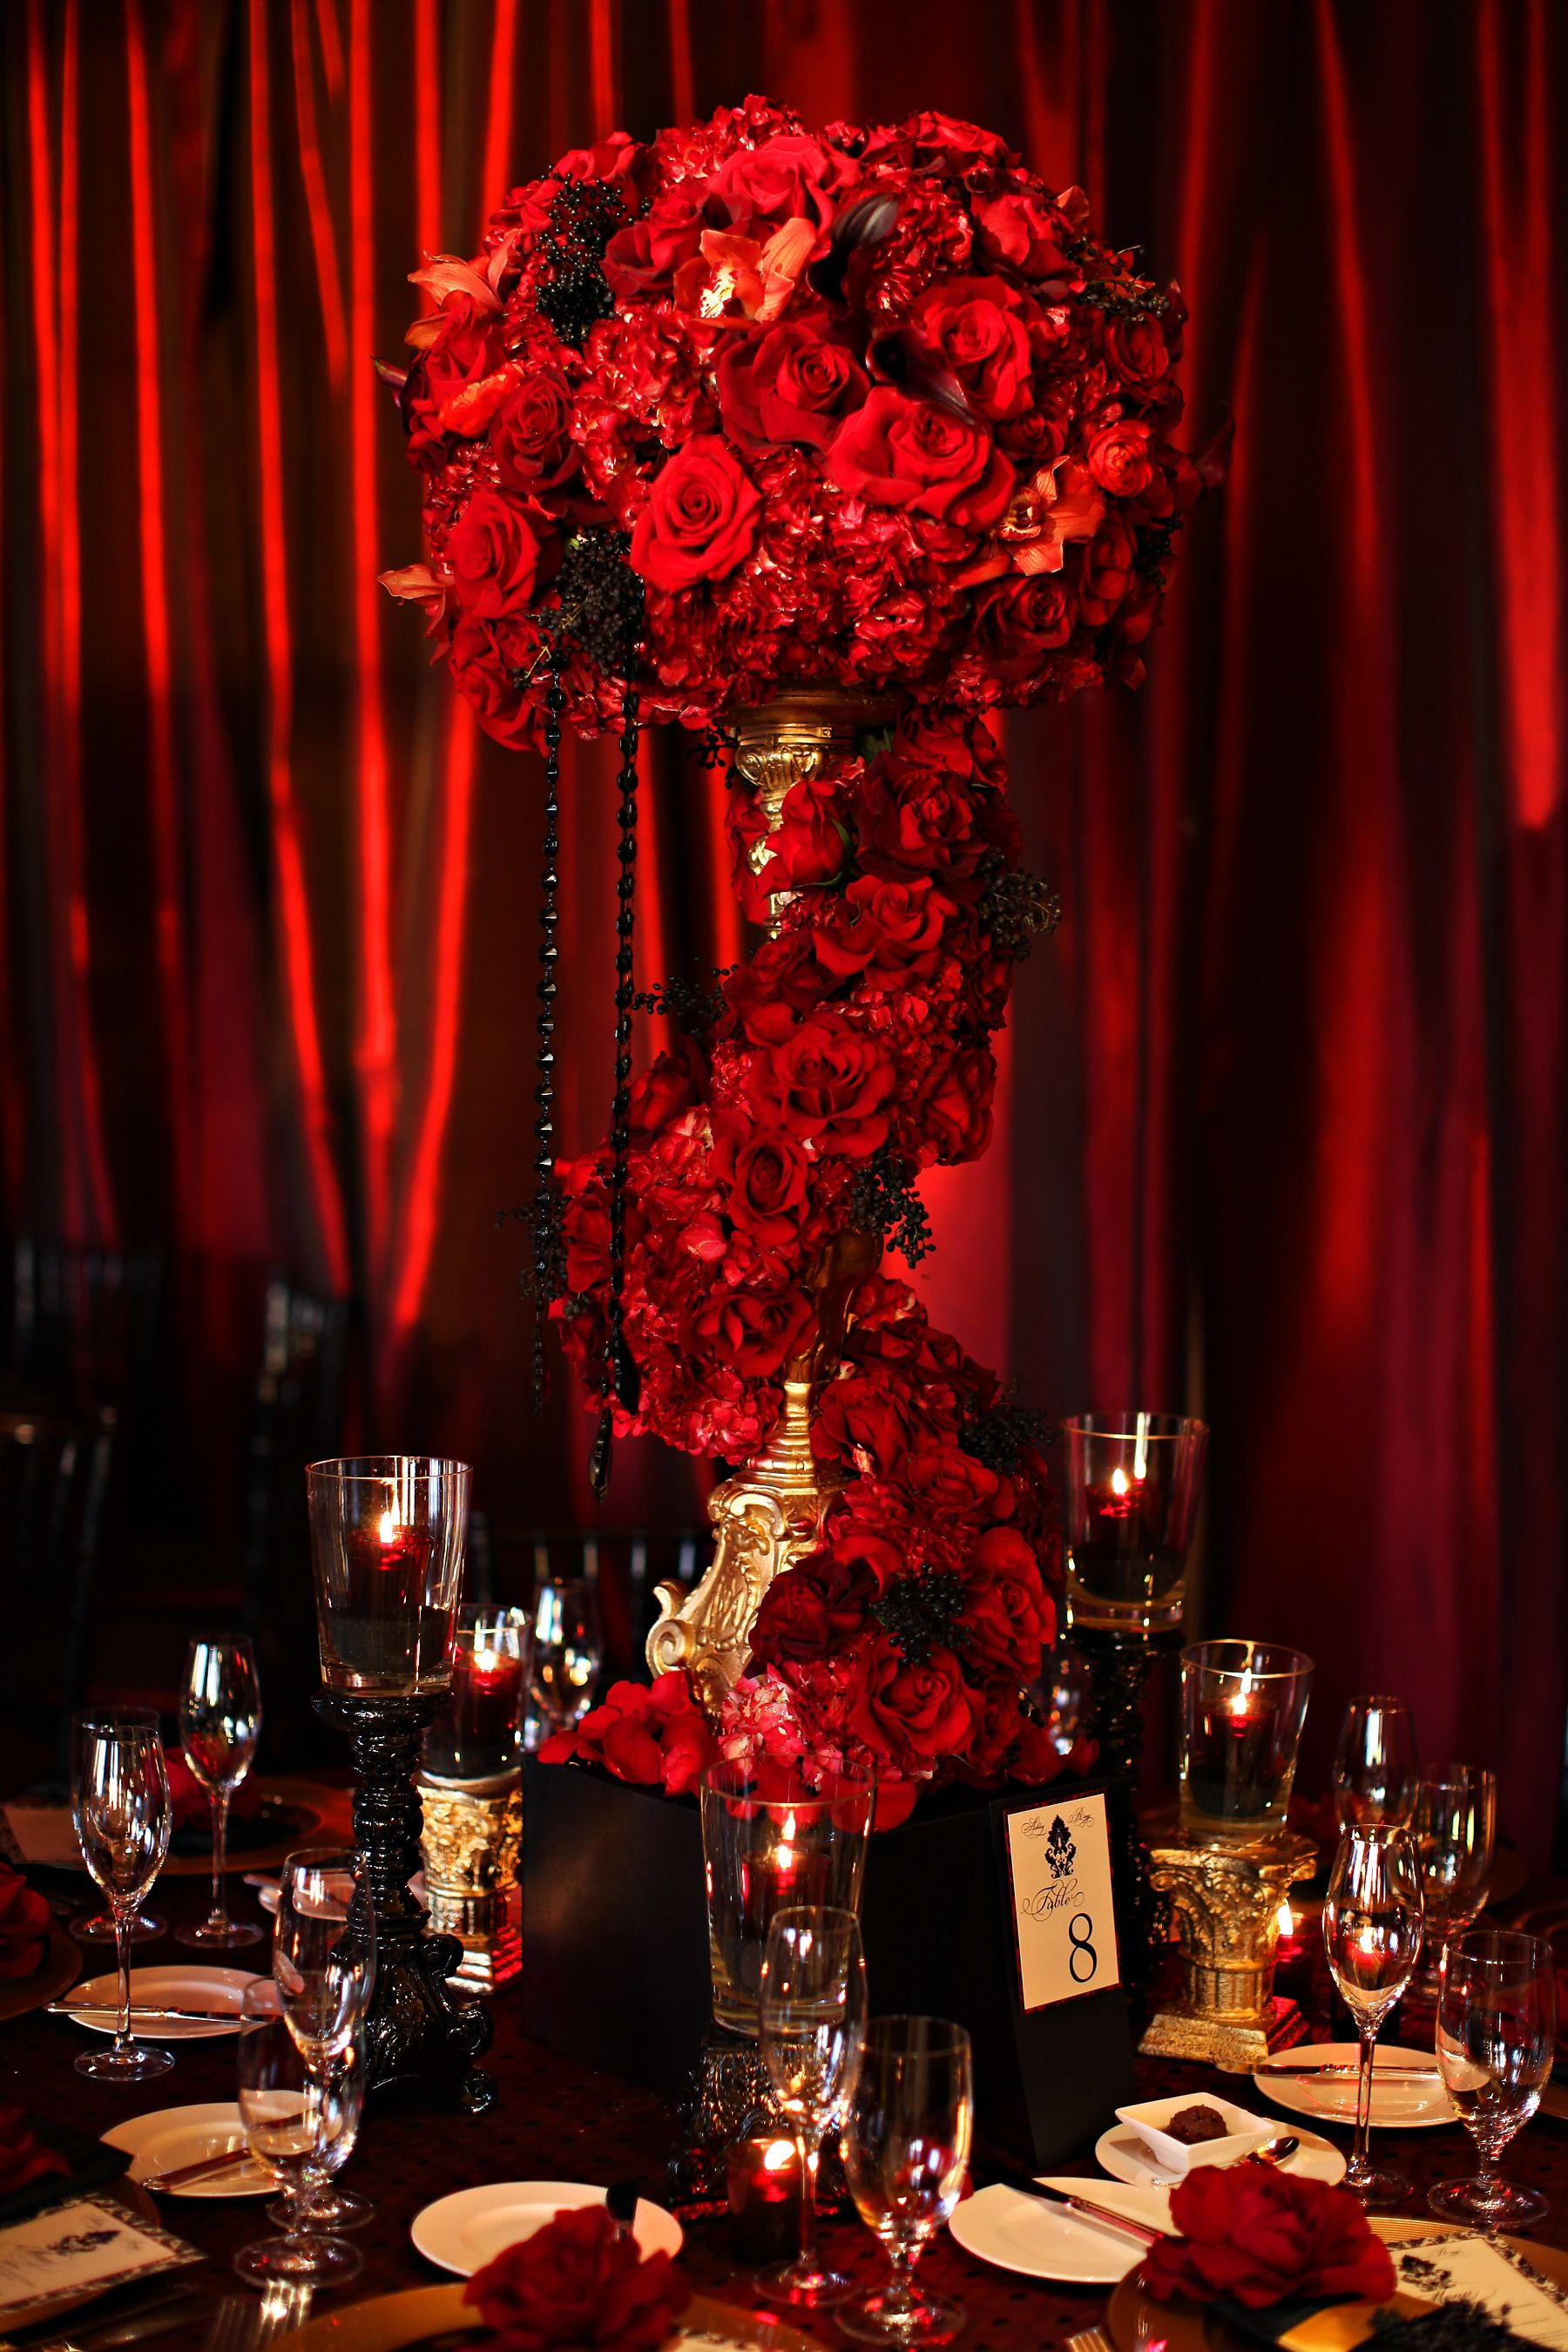 Red Reception Wedding Flowers Decor Flower Centerpiece Arrangement